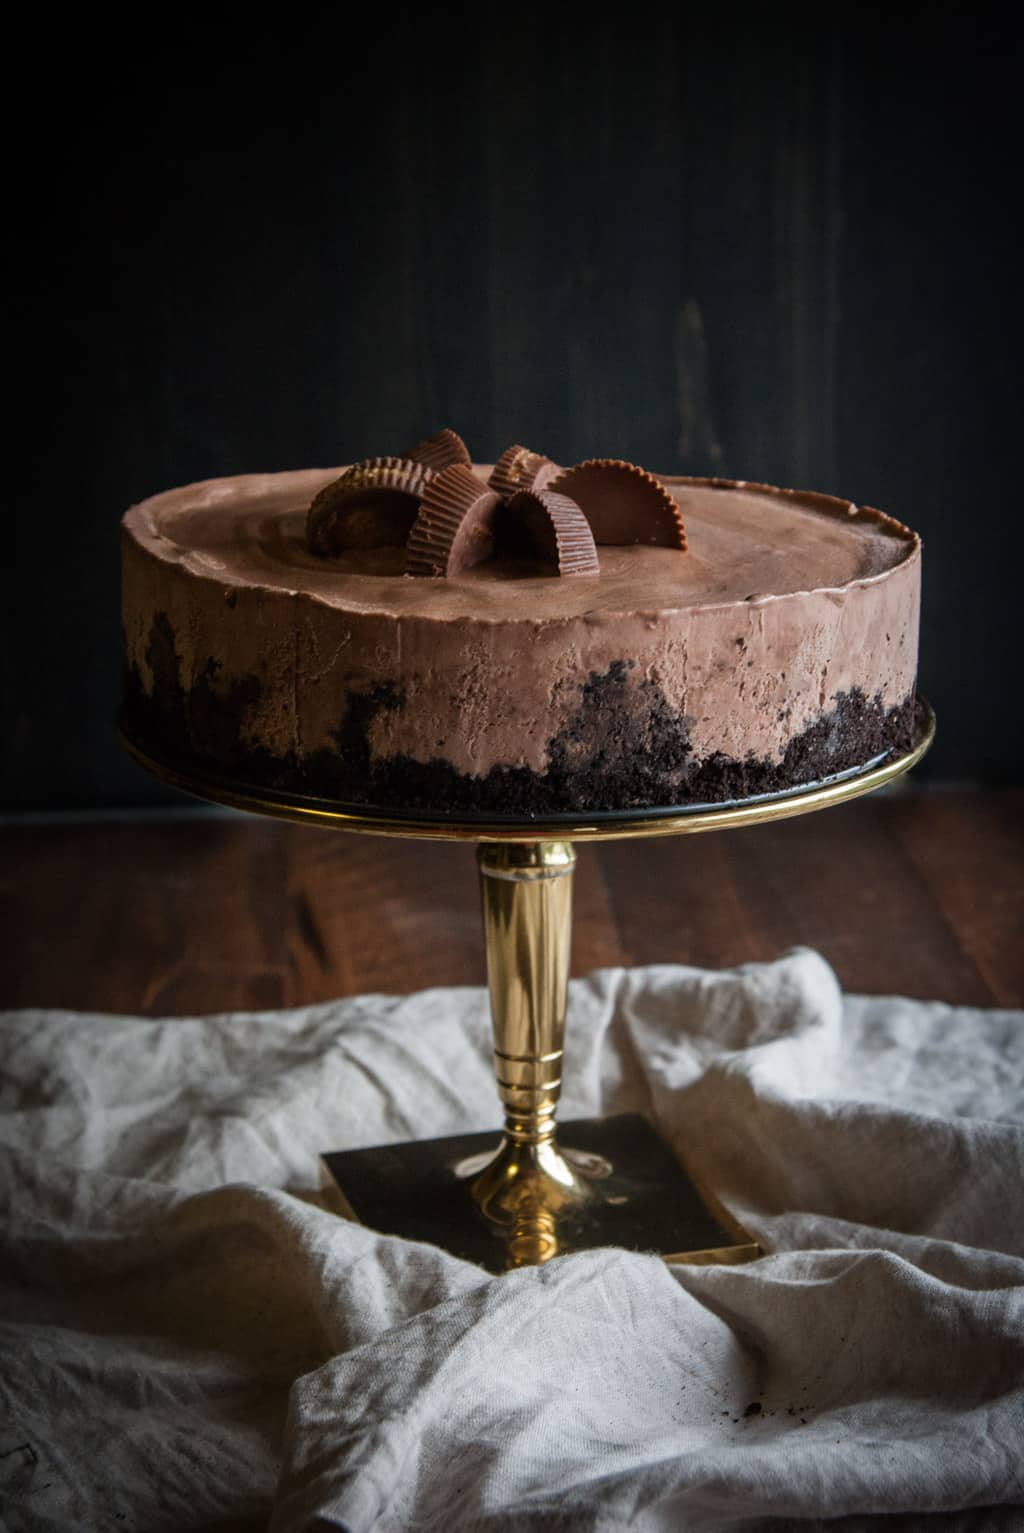 5 ingredient chocolate peanut butter ice cream cake from @sweetphi